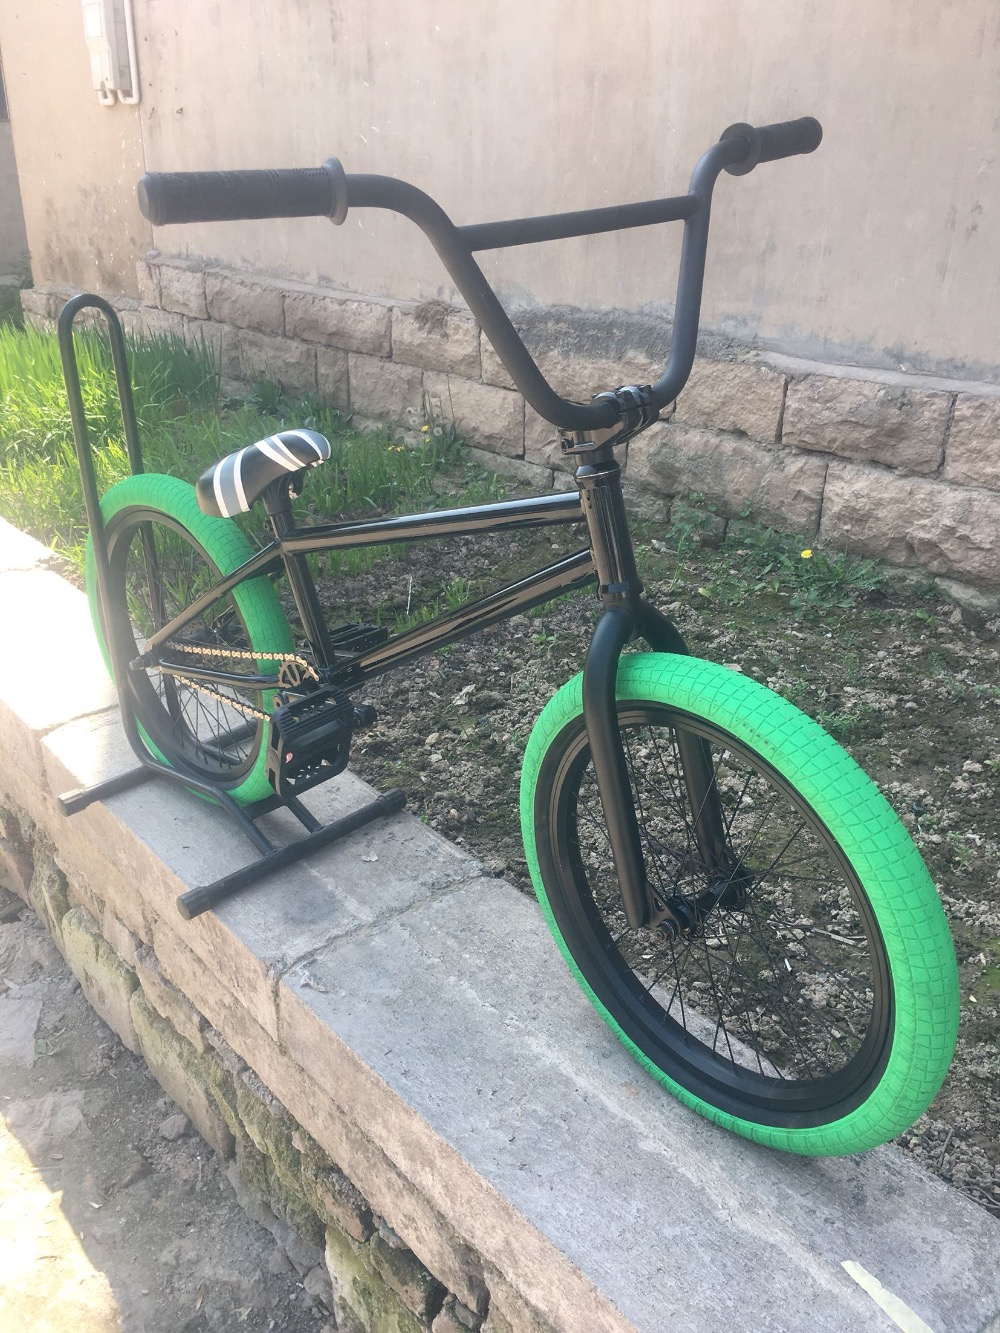 BMX diy bikes v2  20' full crmo full bearings for sale(China)